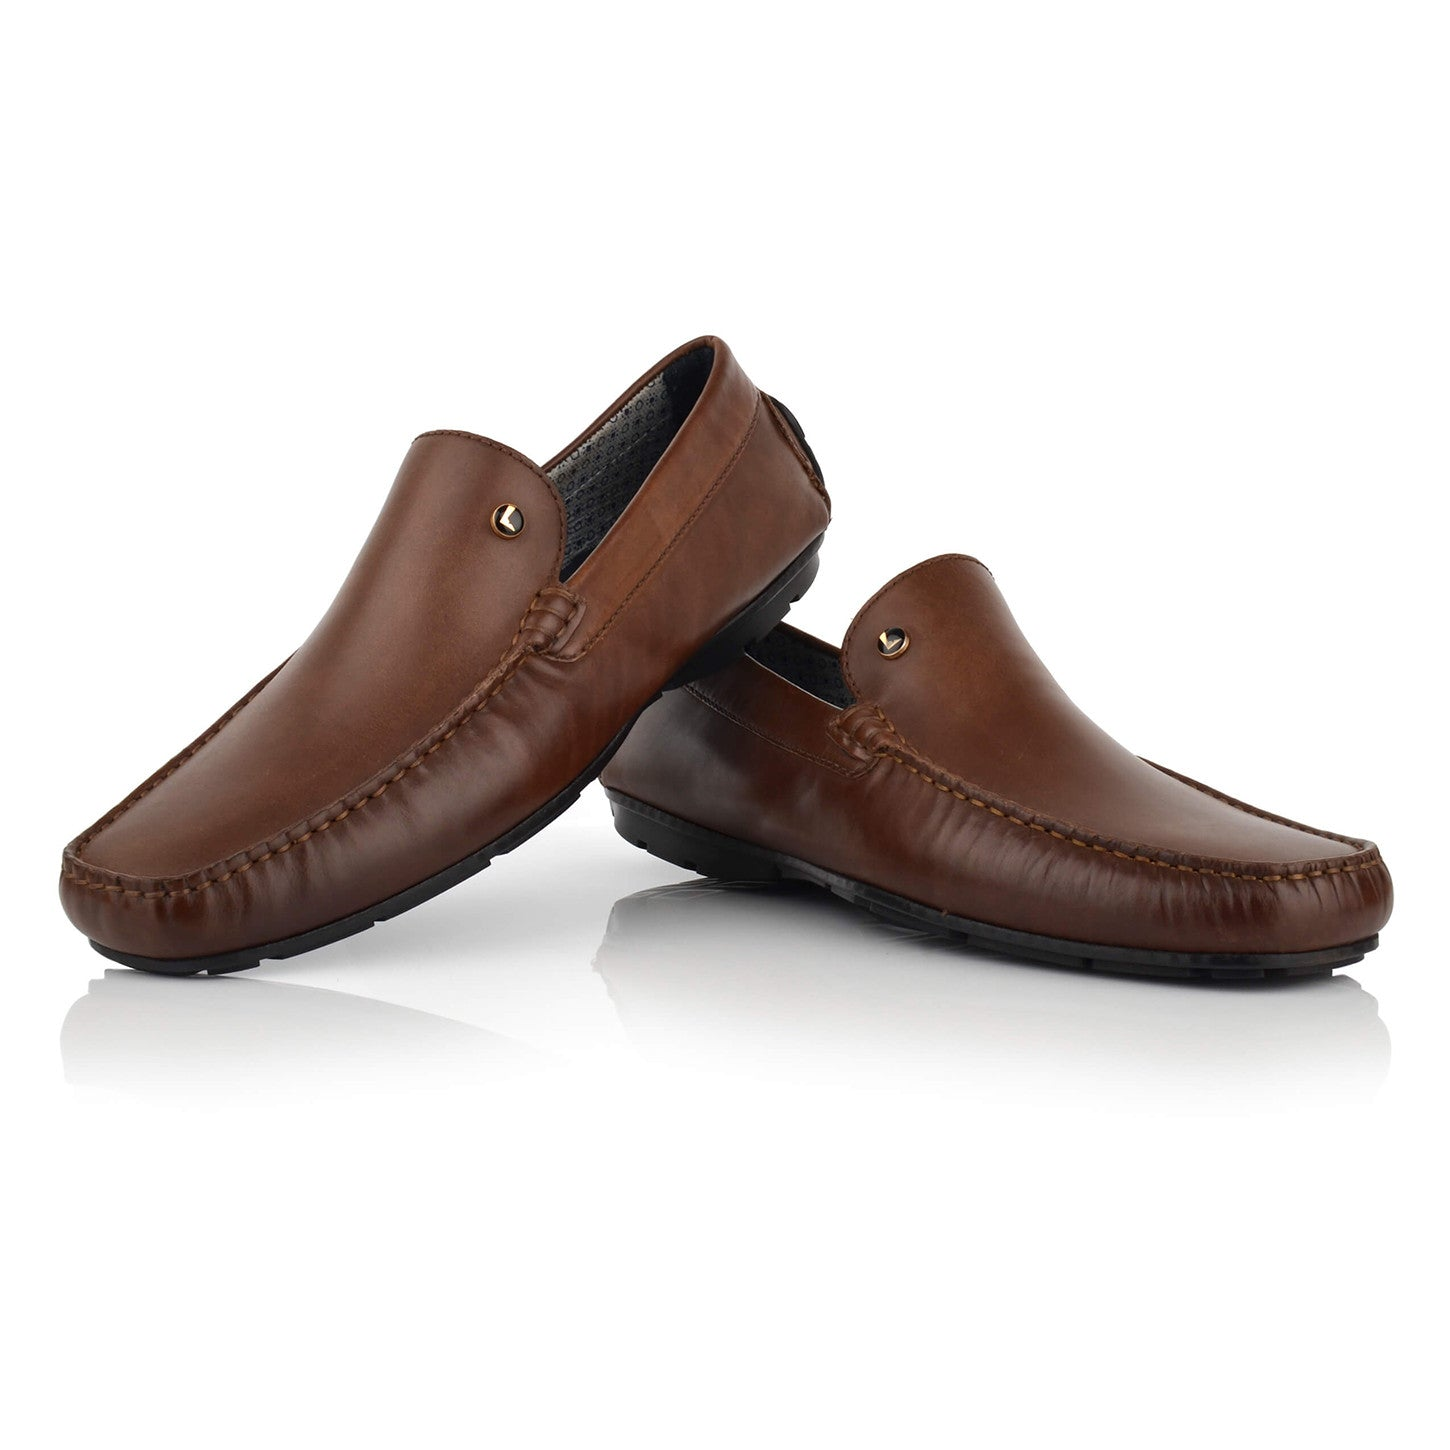 LM500 - Language Aecadian Men's Casual Tan Drivers